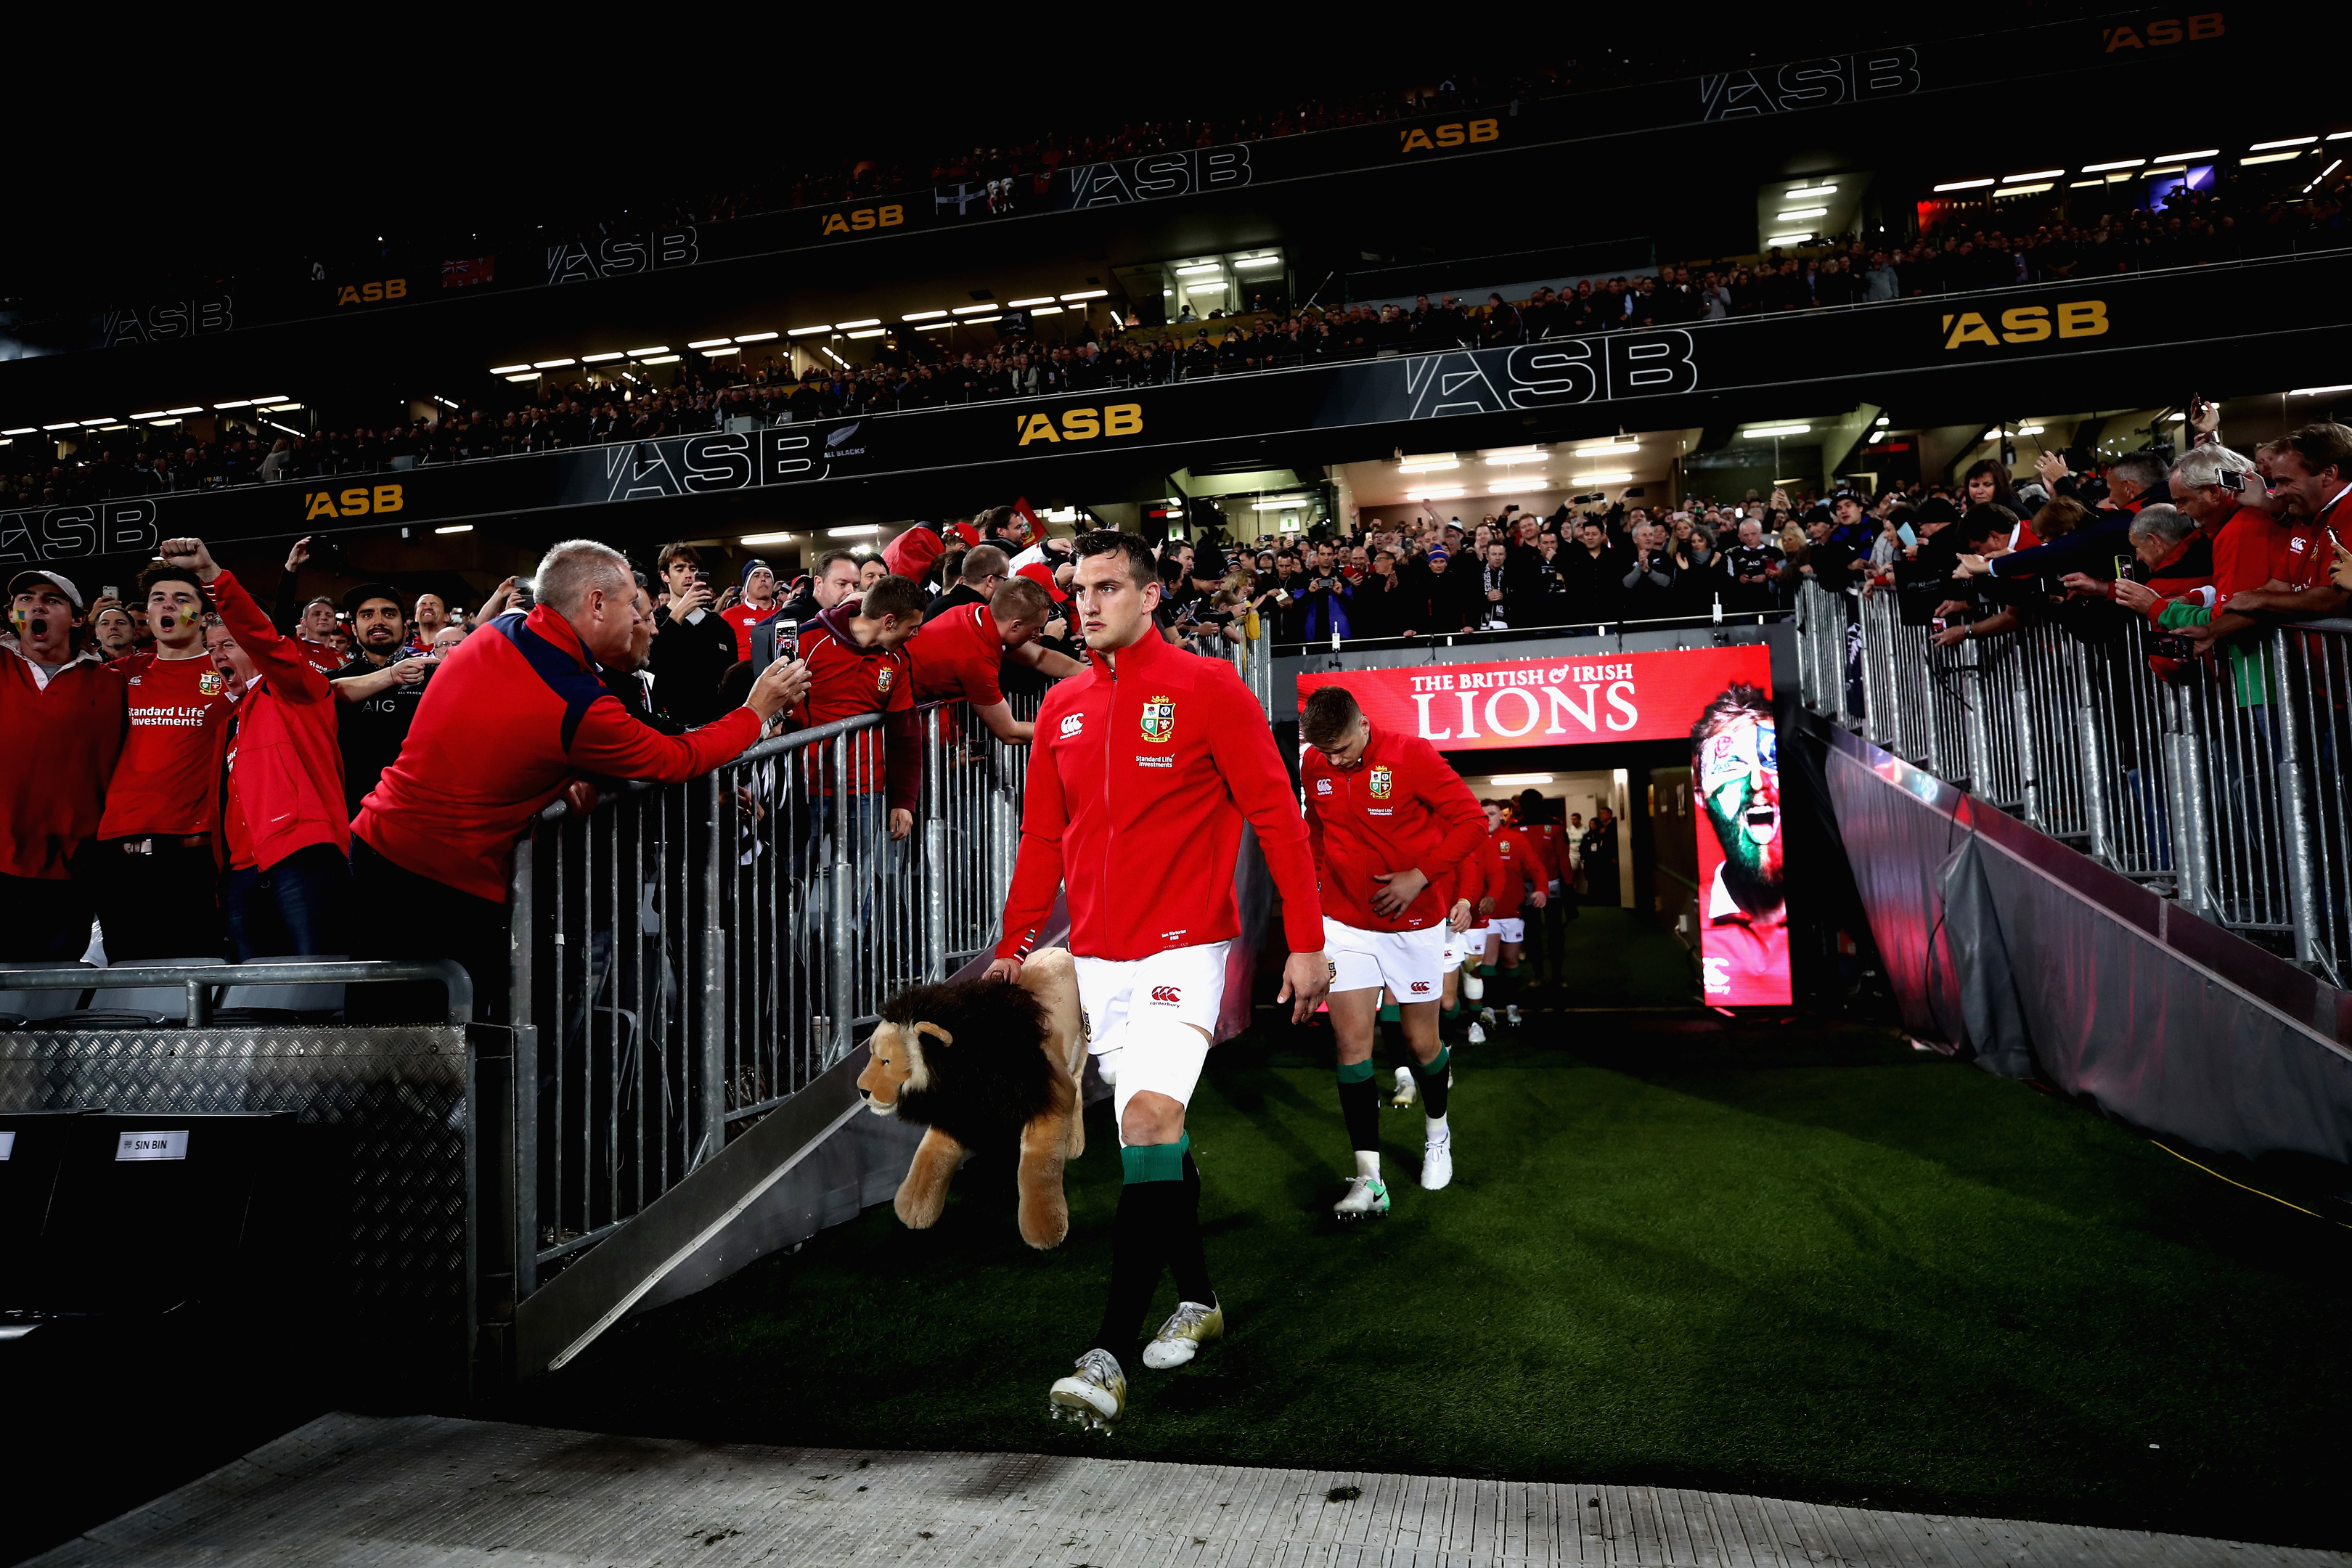 Sam Warburton leads the Lions out for the third test in Auckland.